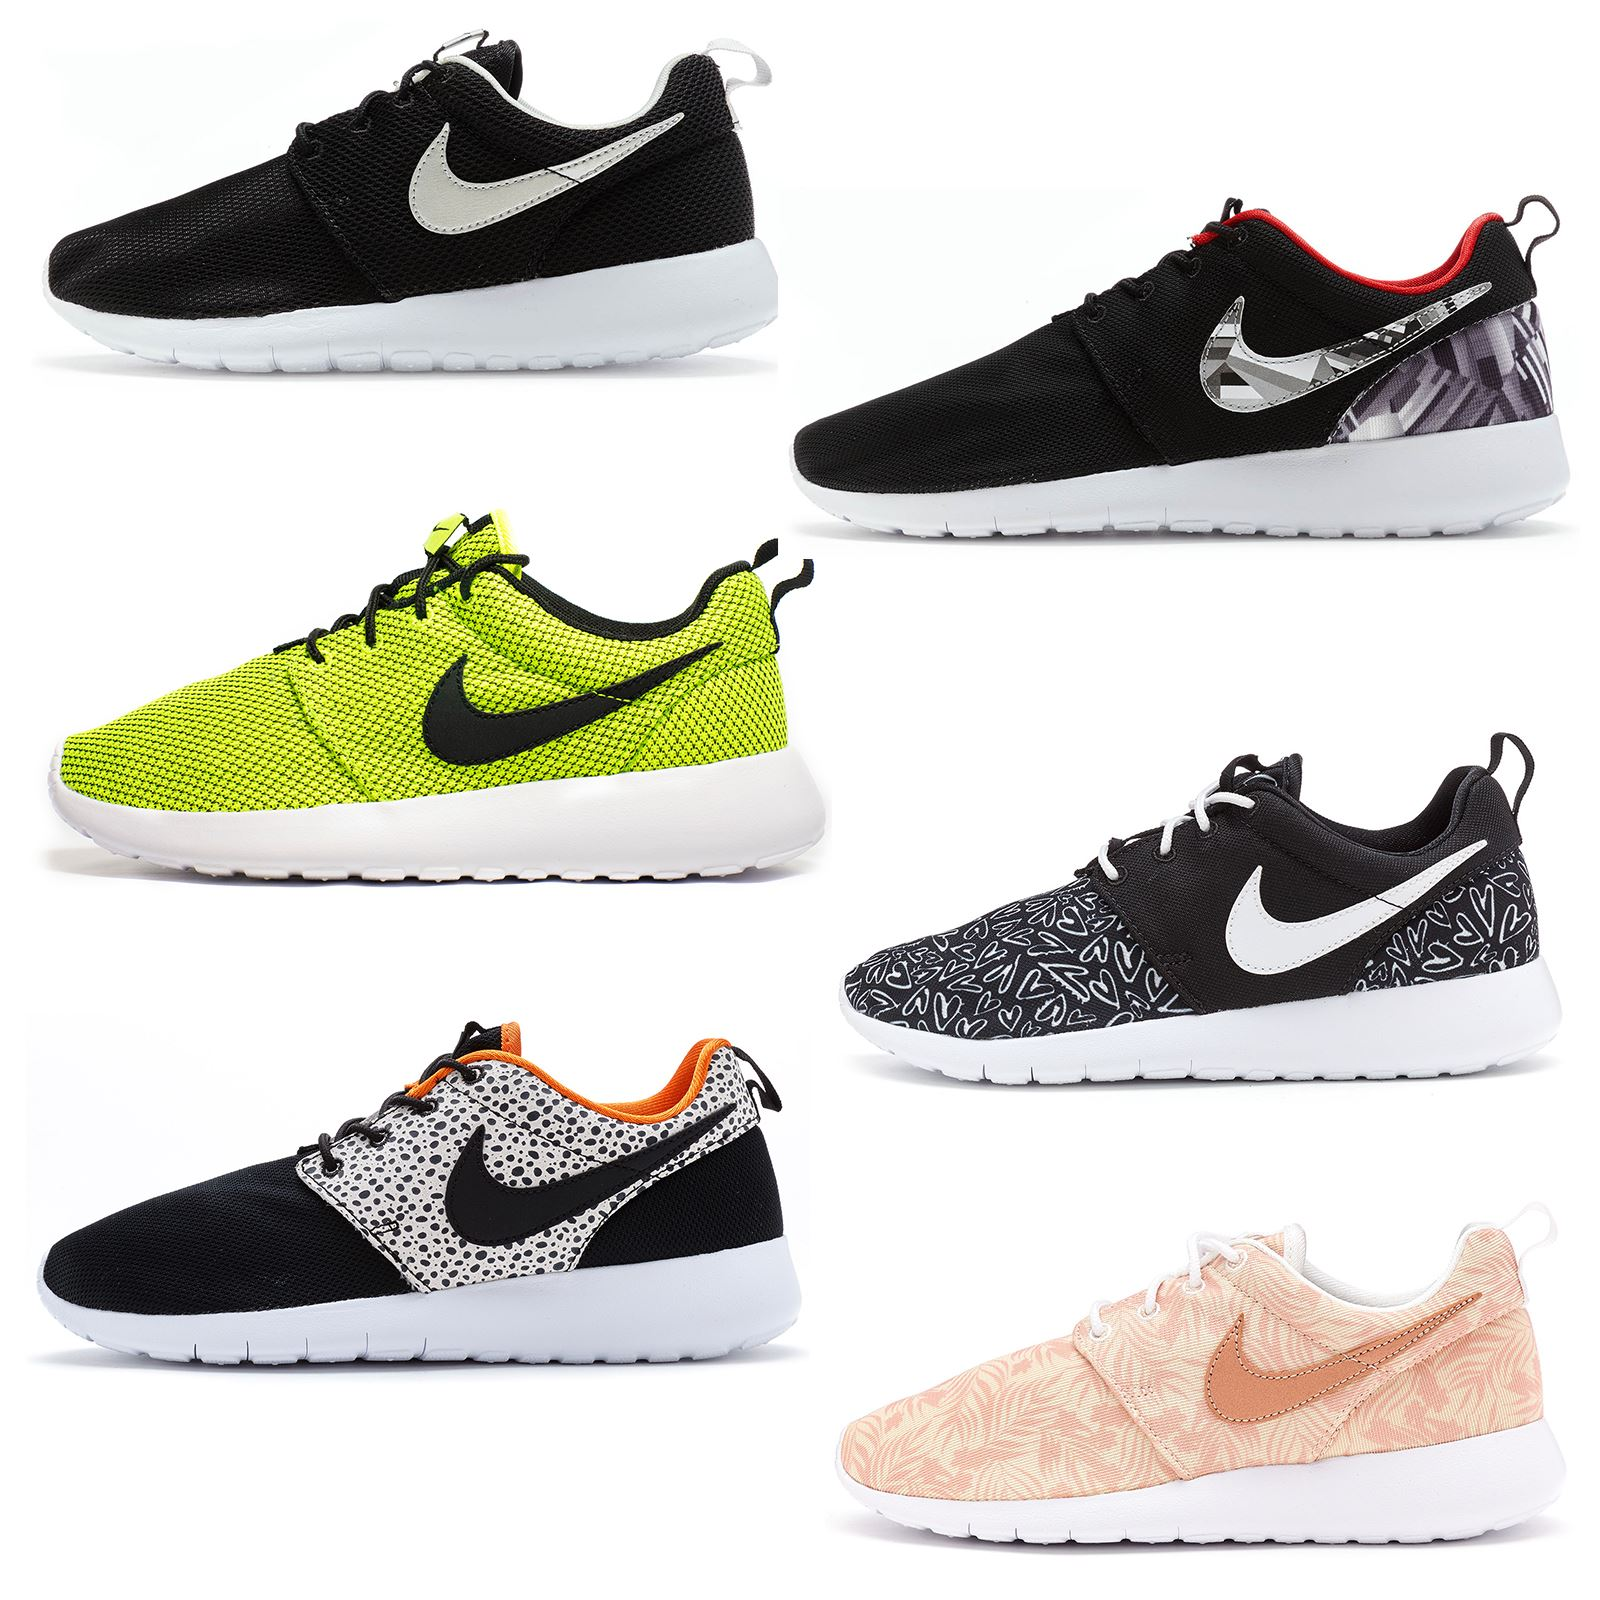 3befea277e8ac Details about Nike Roshe Run One Print   Mesh GS Trainers in All Sizes